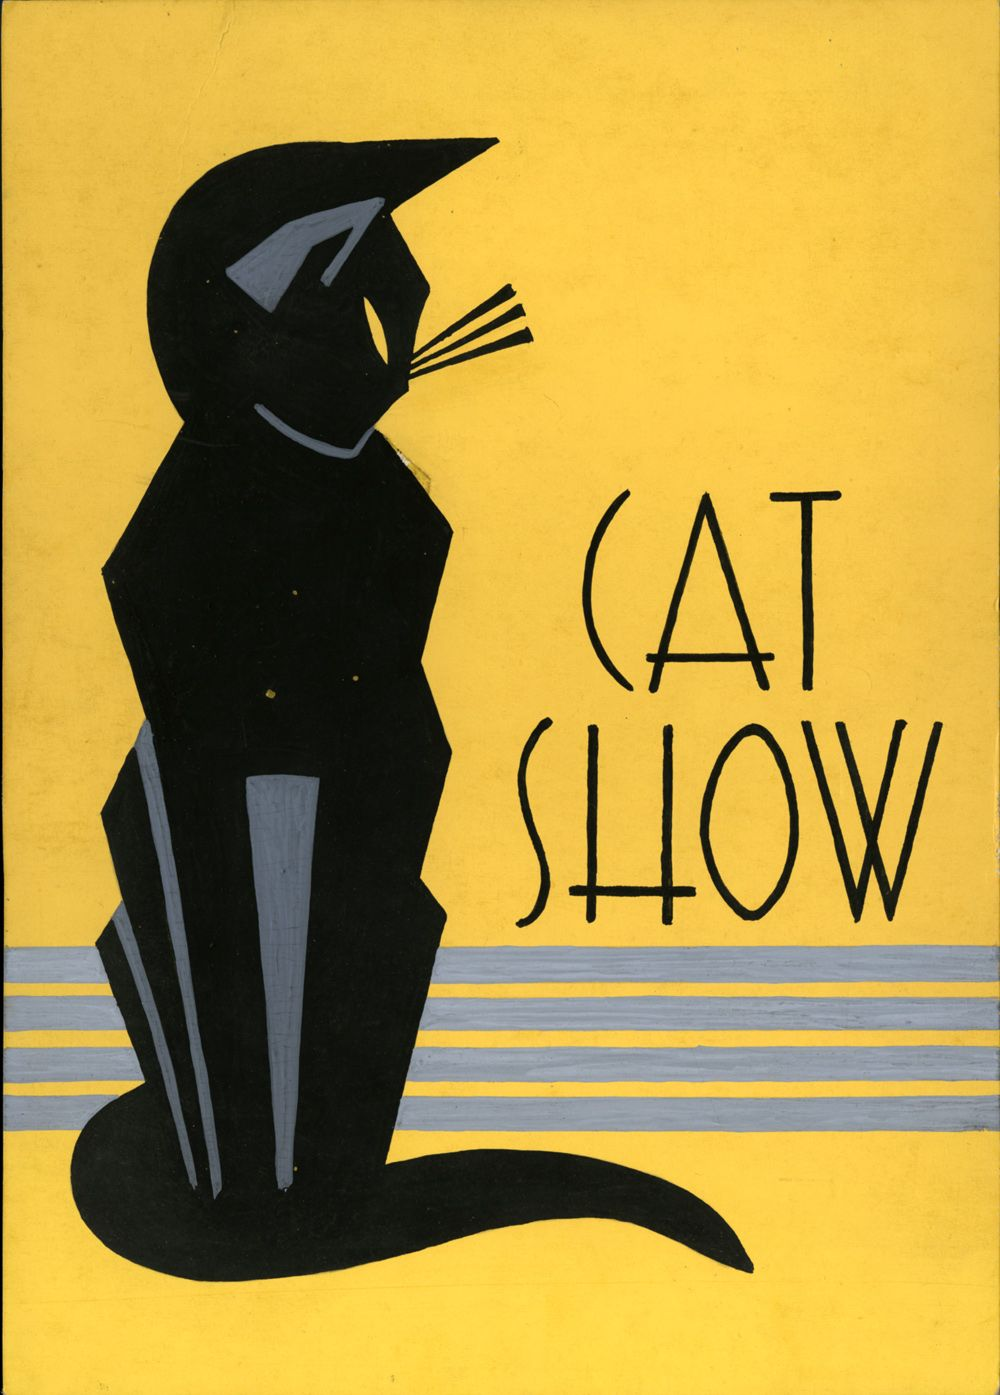 1930s ART DECO STYLIZED CAT GOUACHE ILLUSTRATION ART PAINTING CAT ...